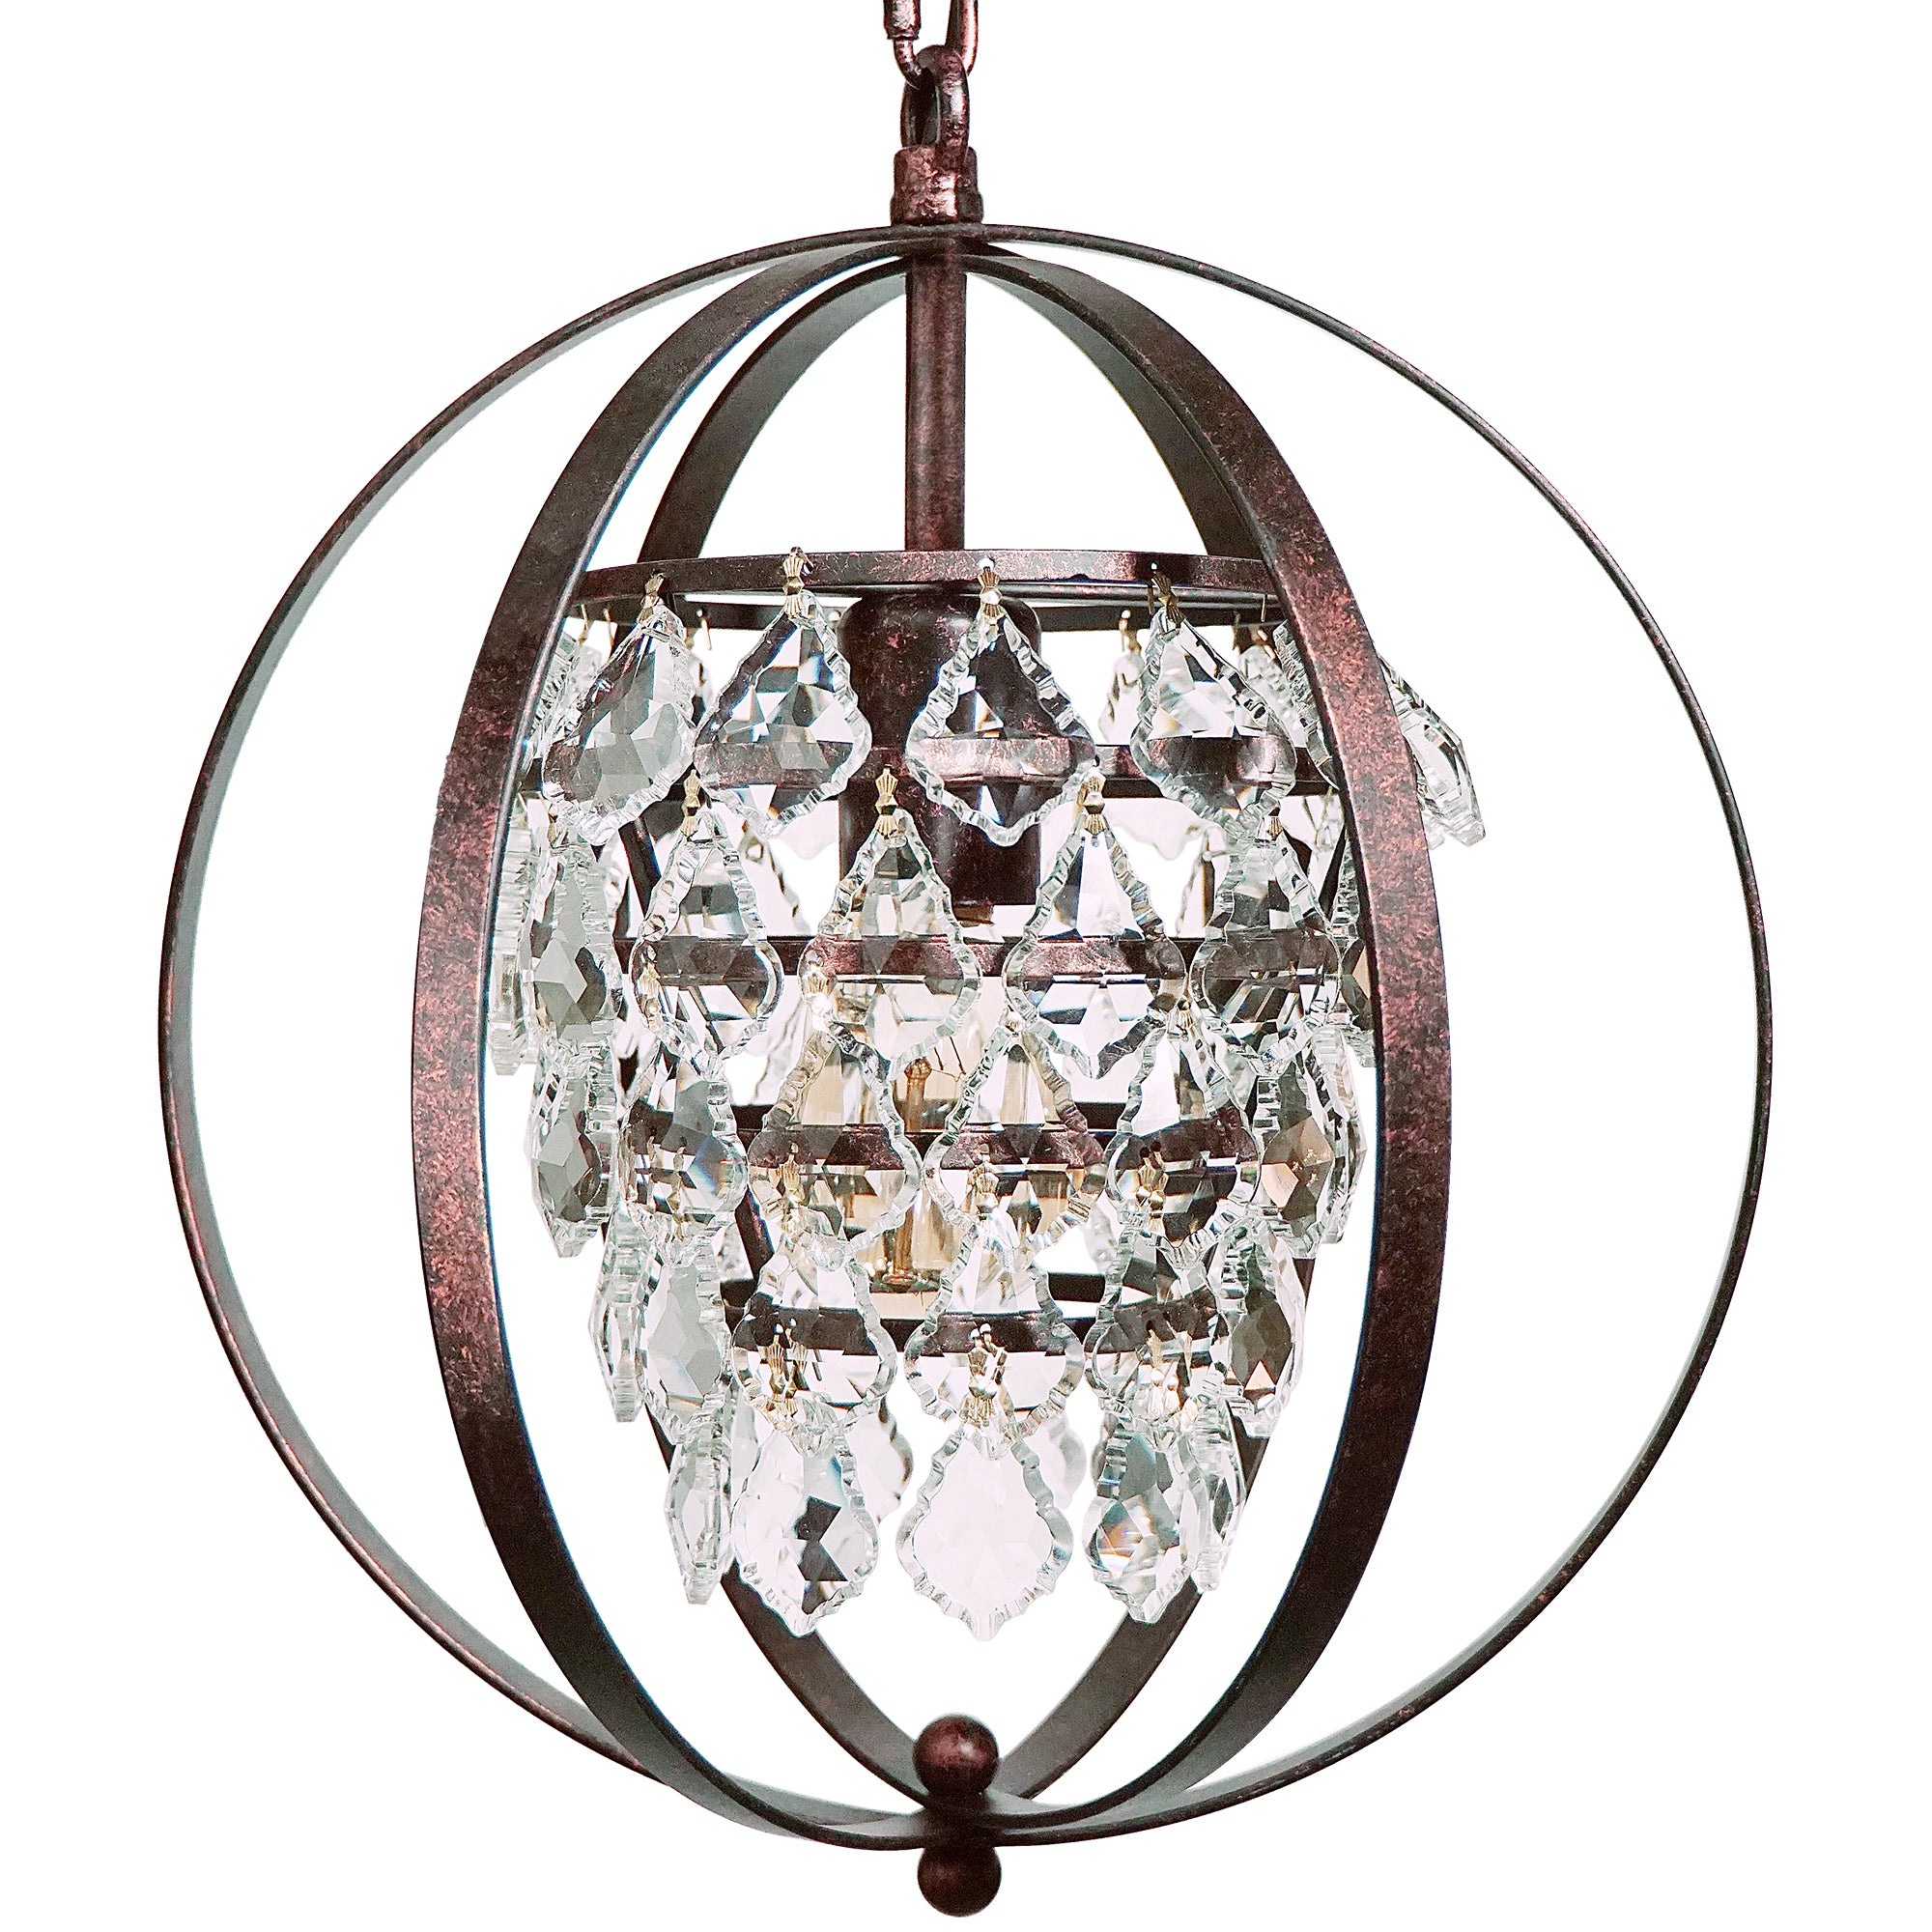 Starthi mini crystal pendant light globe chandelier with round shades starthi mini crystal pendant light globe chandelier with round shades wrought iron antique bronze arubaitofo Images